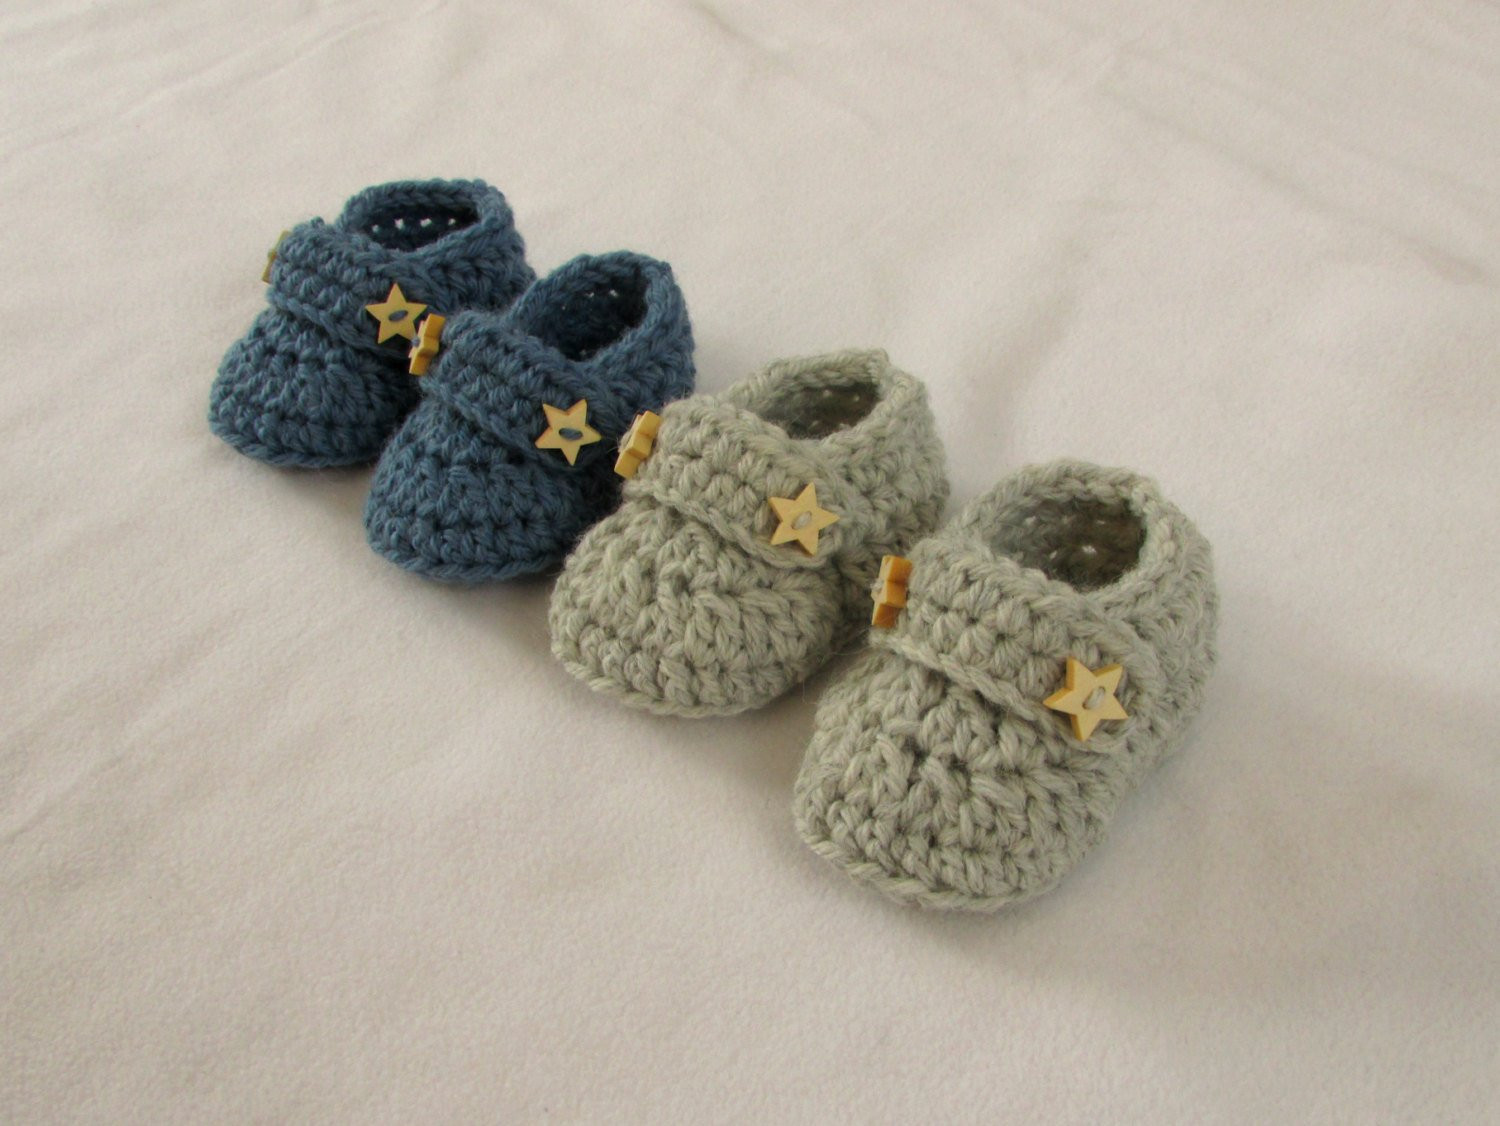 Written Crochet Patterns Luxury Crochet Baby Booties Loafers Written Pattern Of Beautiful 42 Ideas Written Crochet Patterns